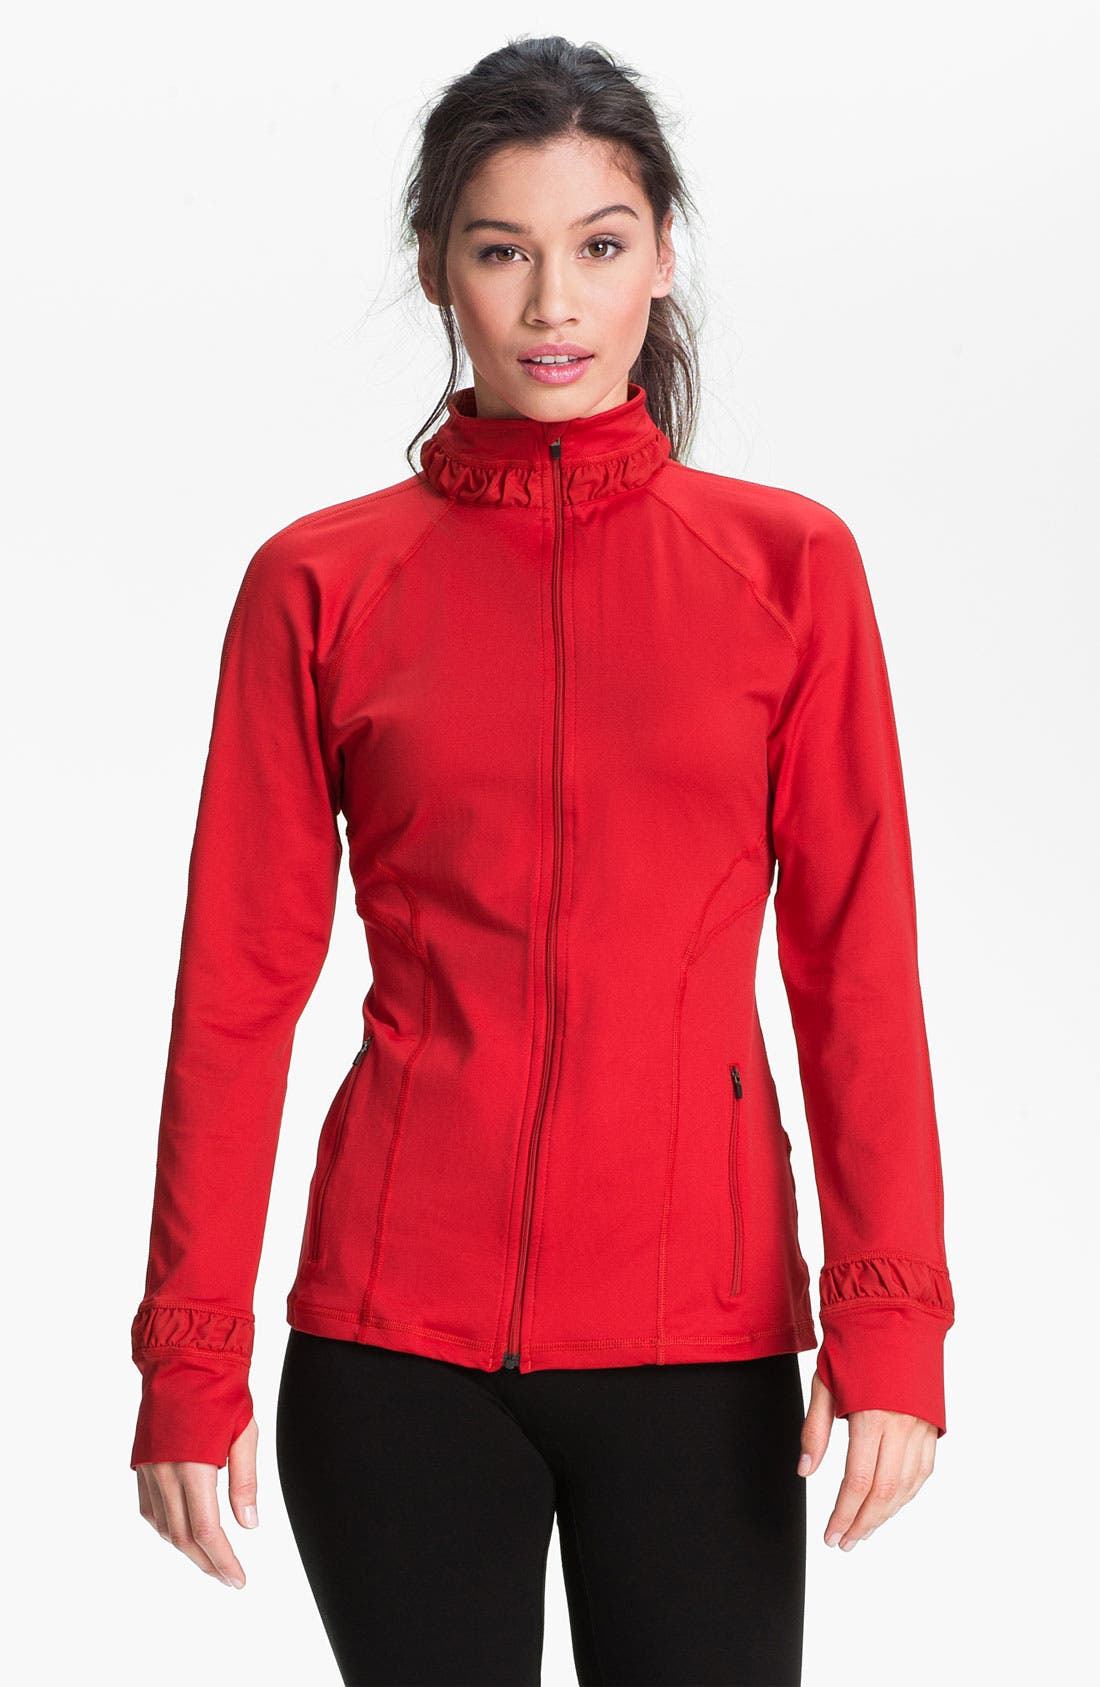 Alternate Image 1 Selected - SPANX® 'Contour' Activewear Jacket